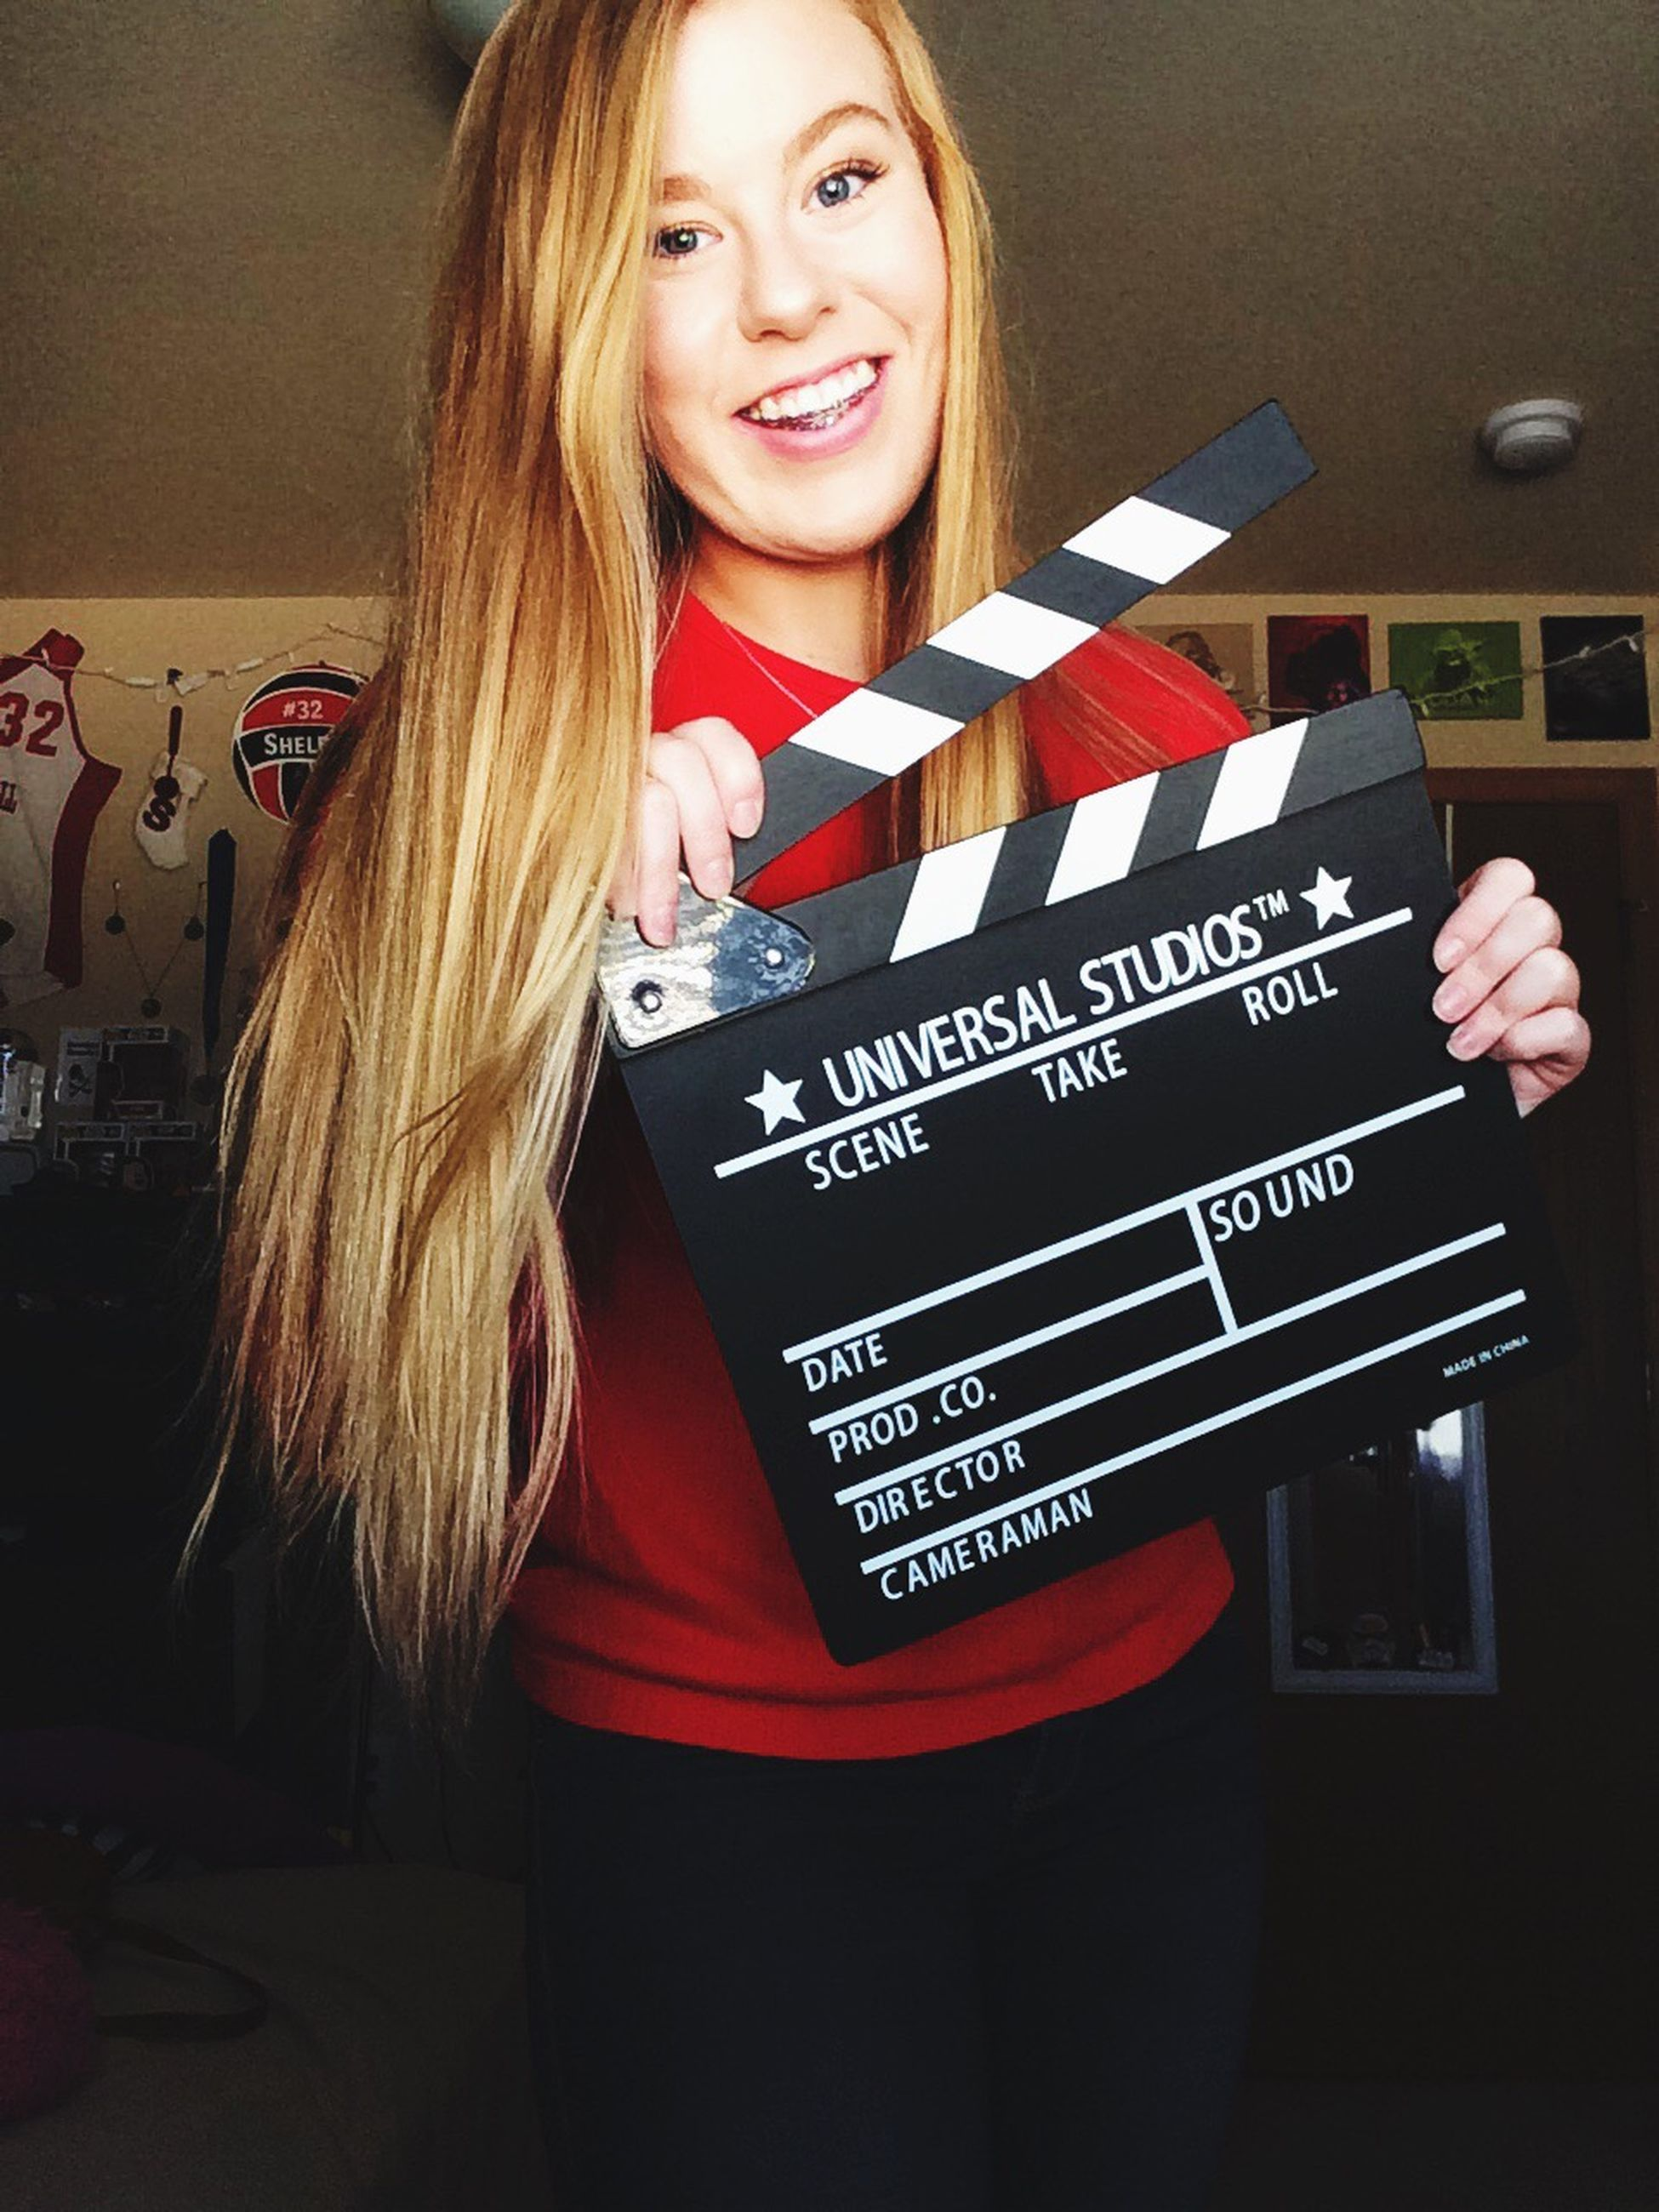 smiling, blond hair, toothy smile, red, long hair, blackboard, christmas, cheerful, excitement, happiness, portrait, beautiful people, one person, indoors, standing, people, film industry, beautiful woman, adult, adults only